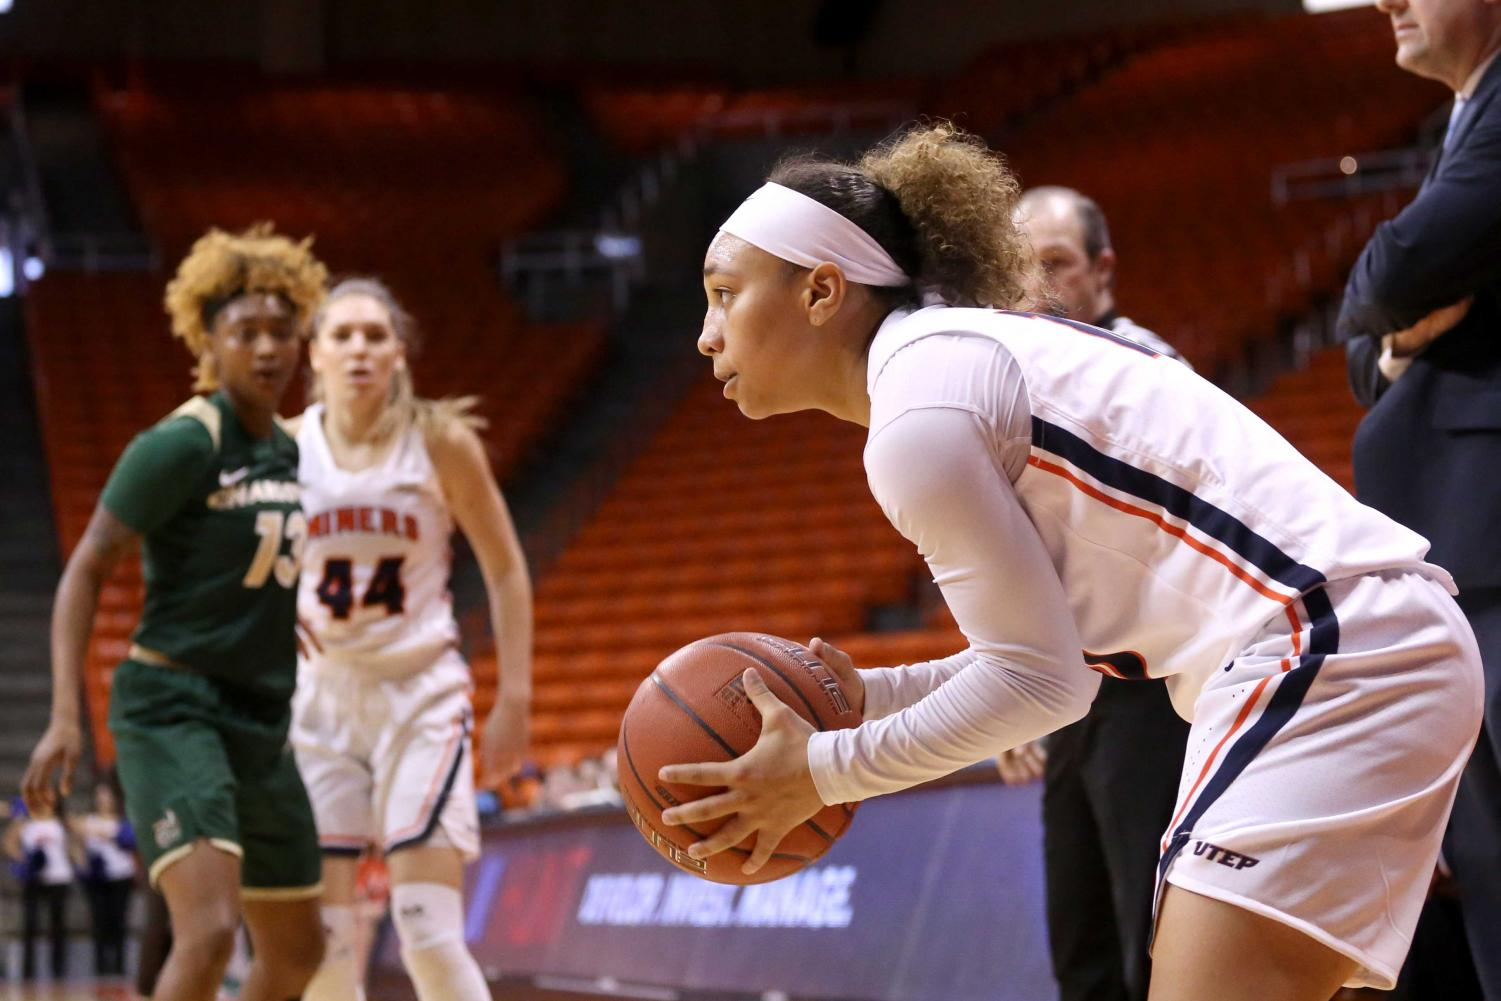 The UTEP women will play at home against UAB on Friday before heading back on the road to face UTSA on Sunday.